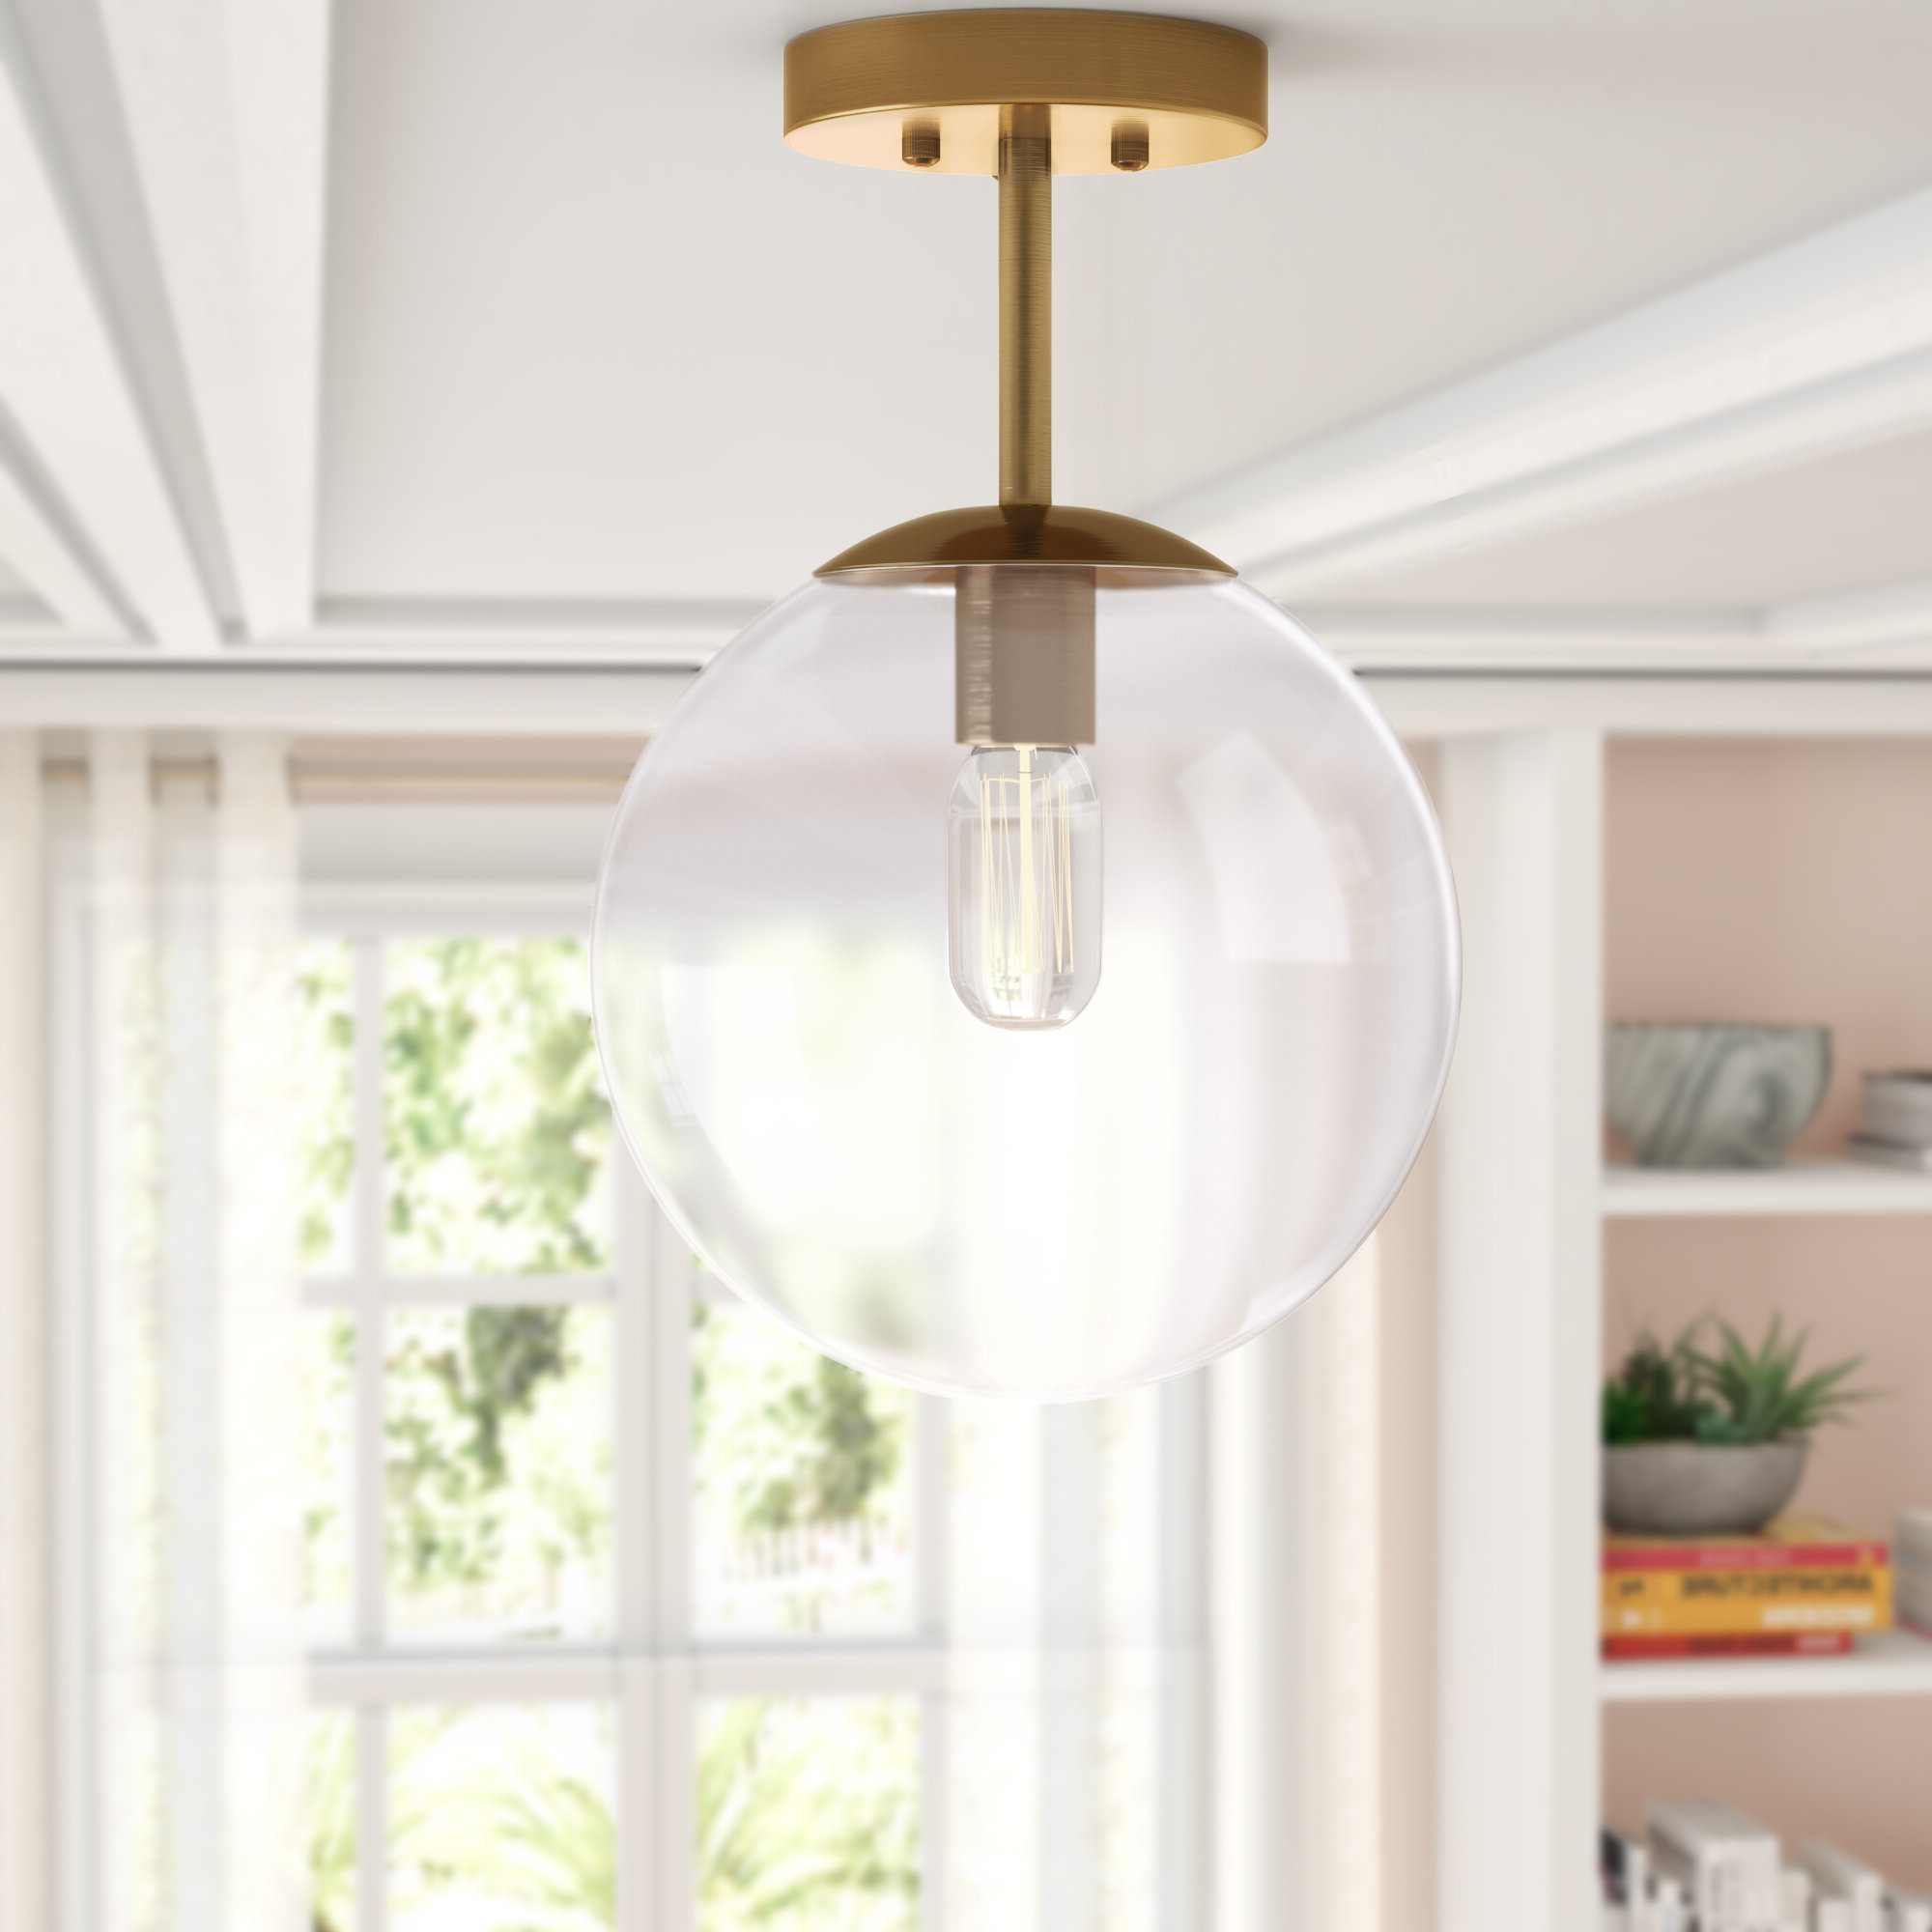 Best And Newest Cournoyer 1 Light Globe Pendant With Regard To 1 Light Globe Pendants (View 19 of 20)